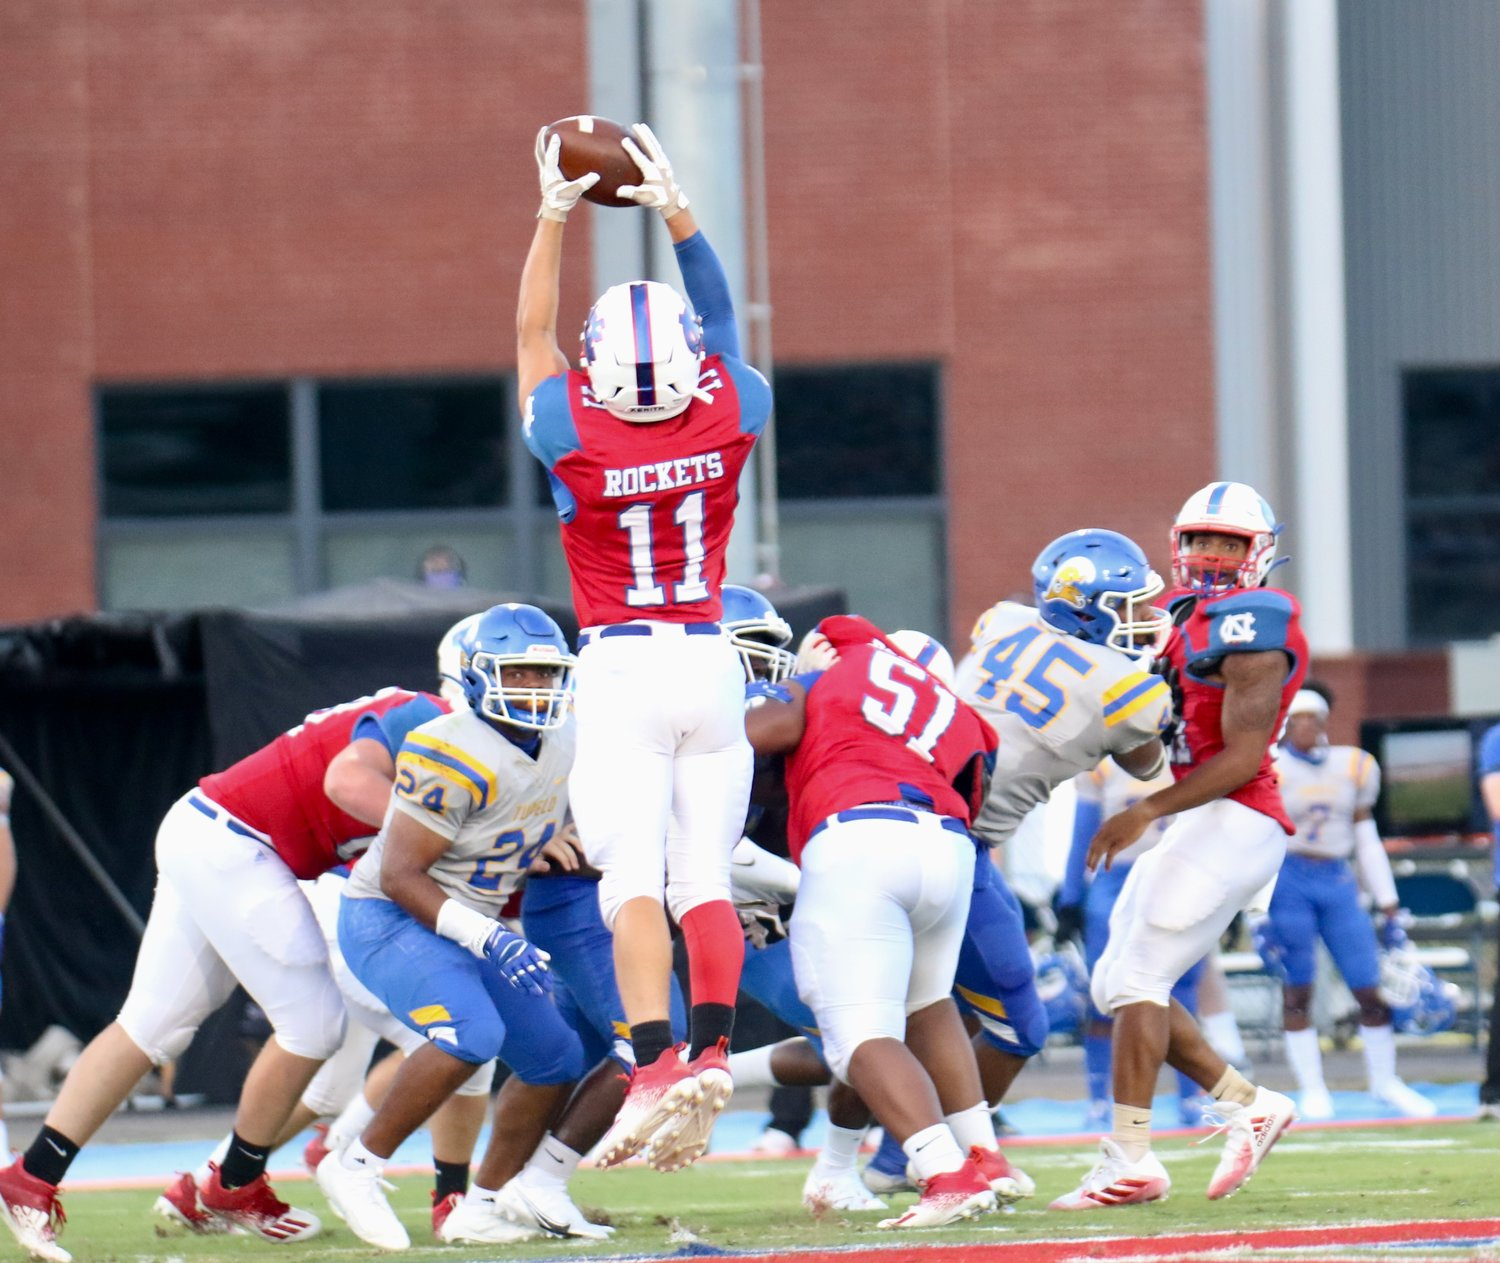 Neshoba Central's Dagan Martin (11) jumps up to receive a pass during the Rockets win over Tupelo.